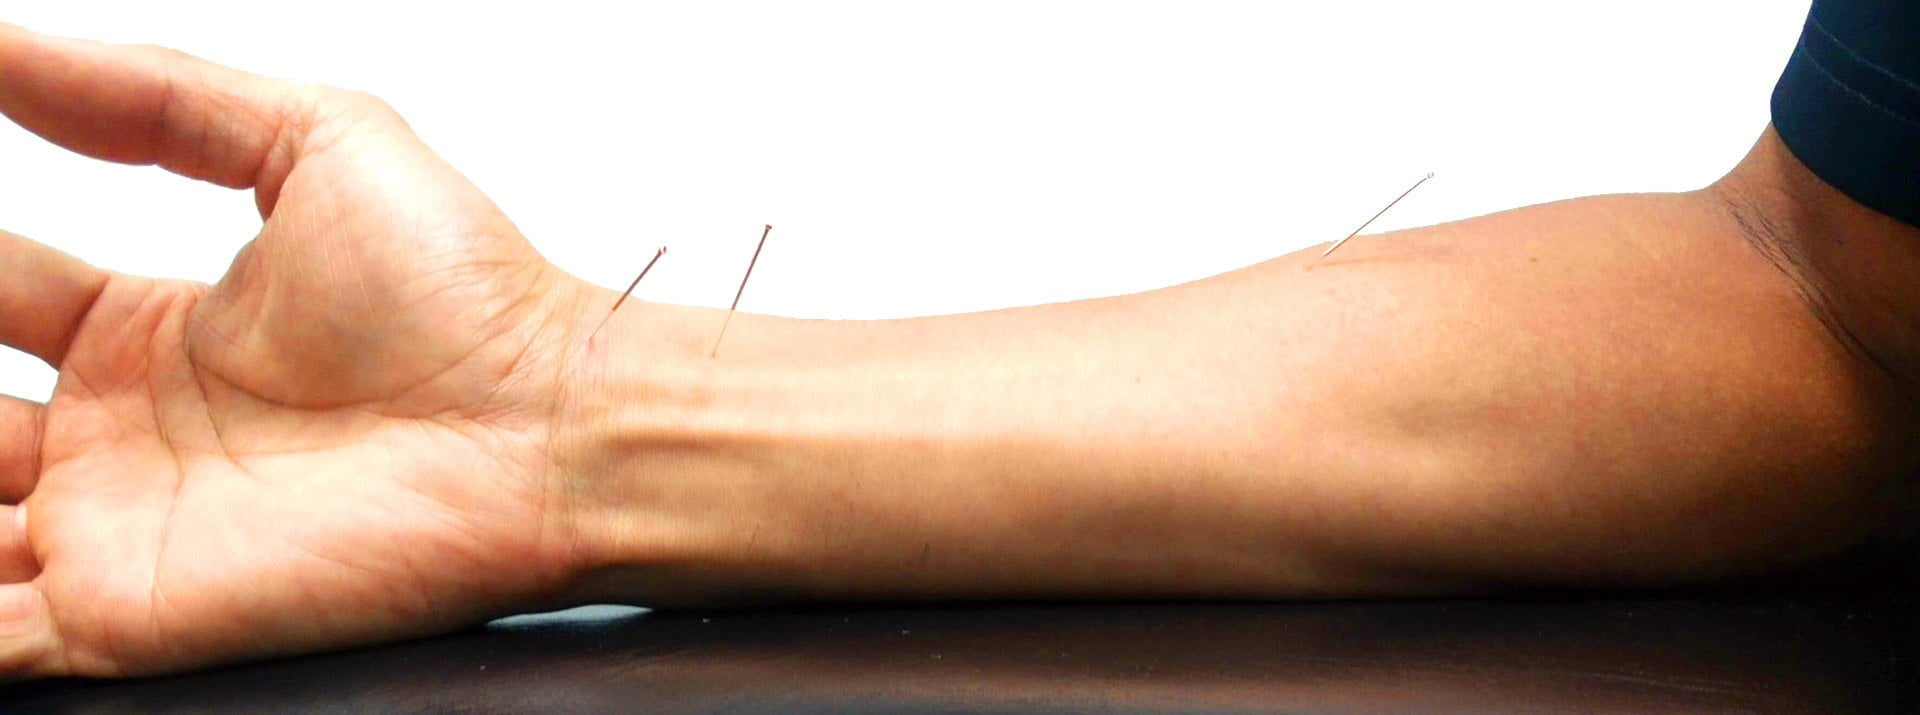 JointAction provides Acupuncture